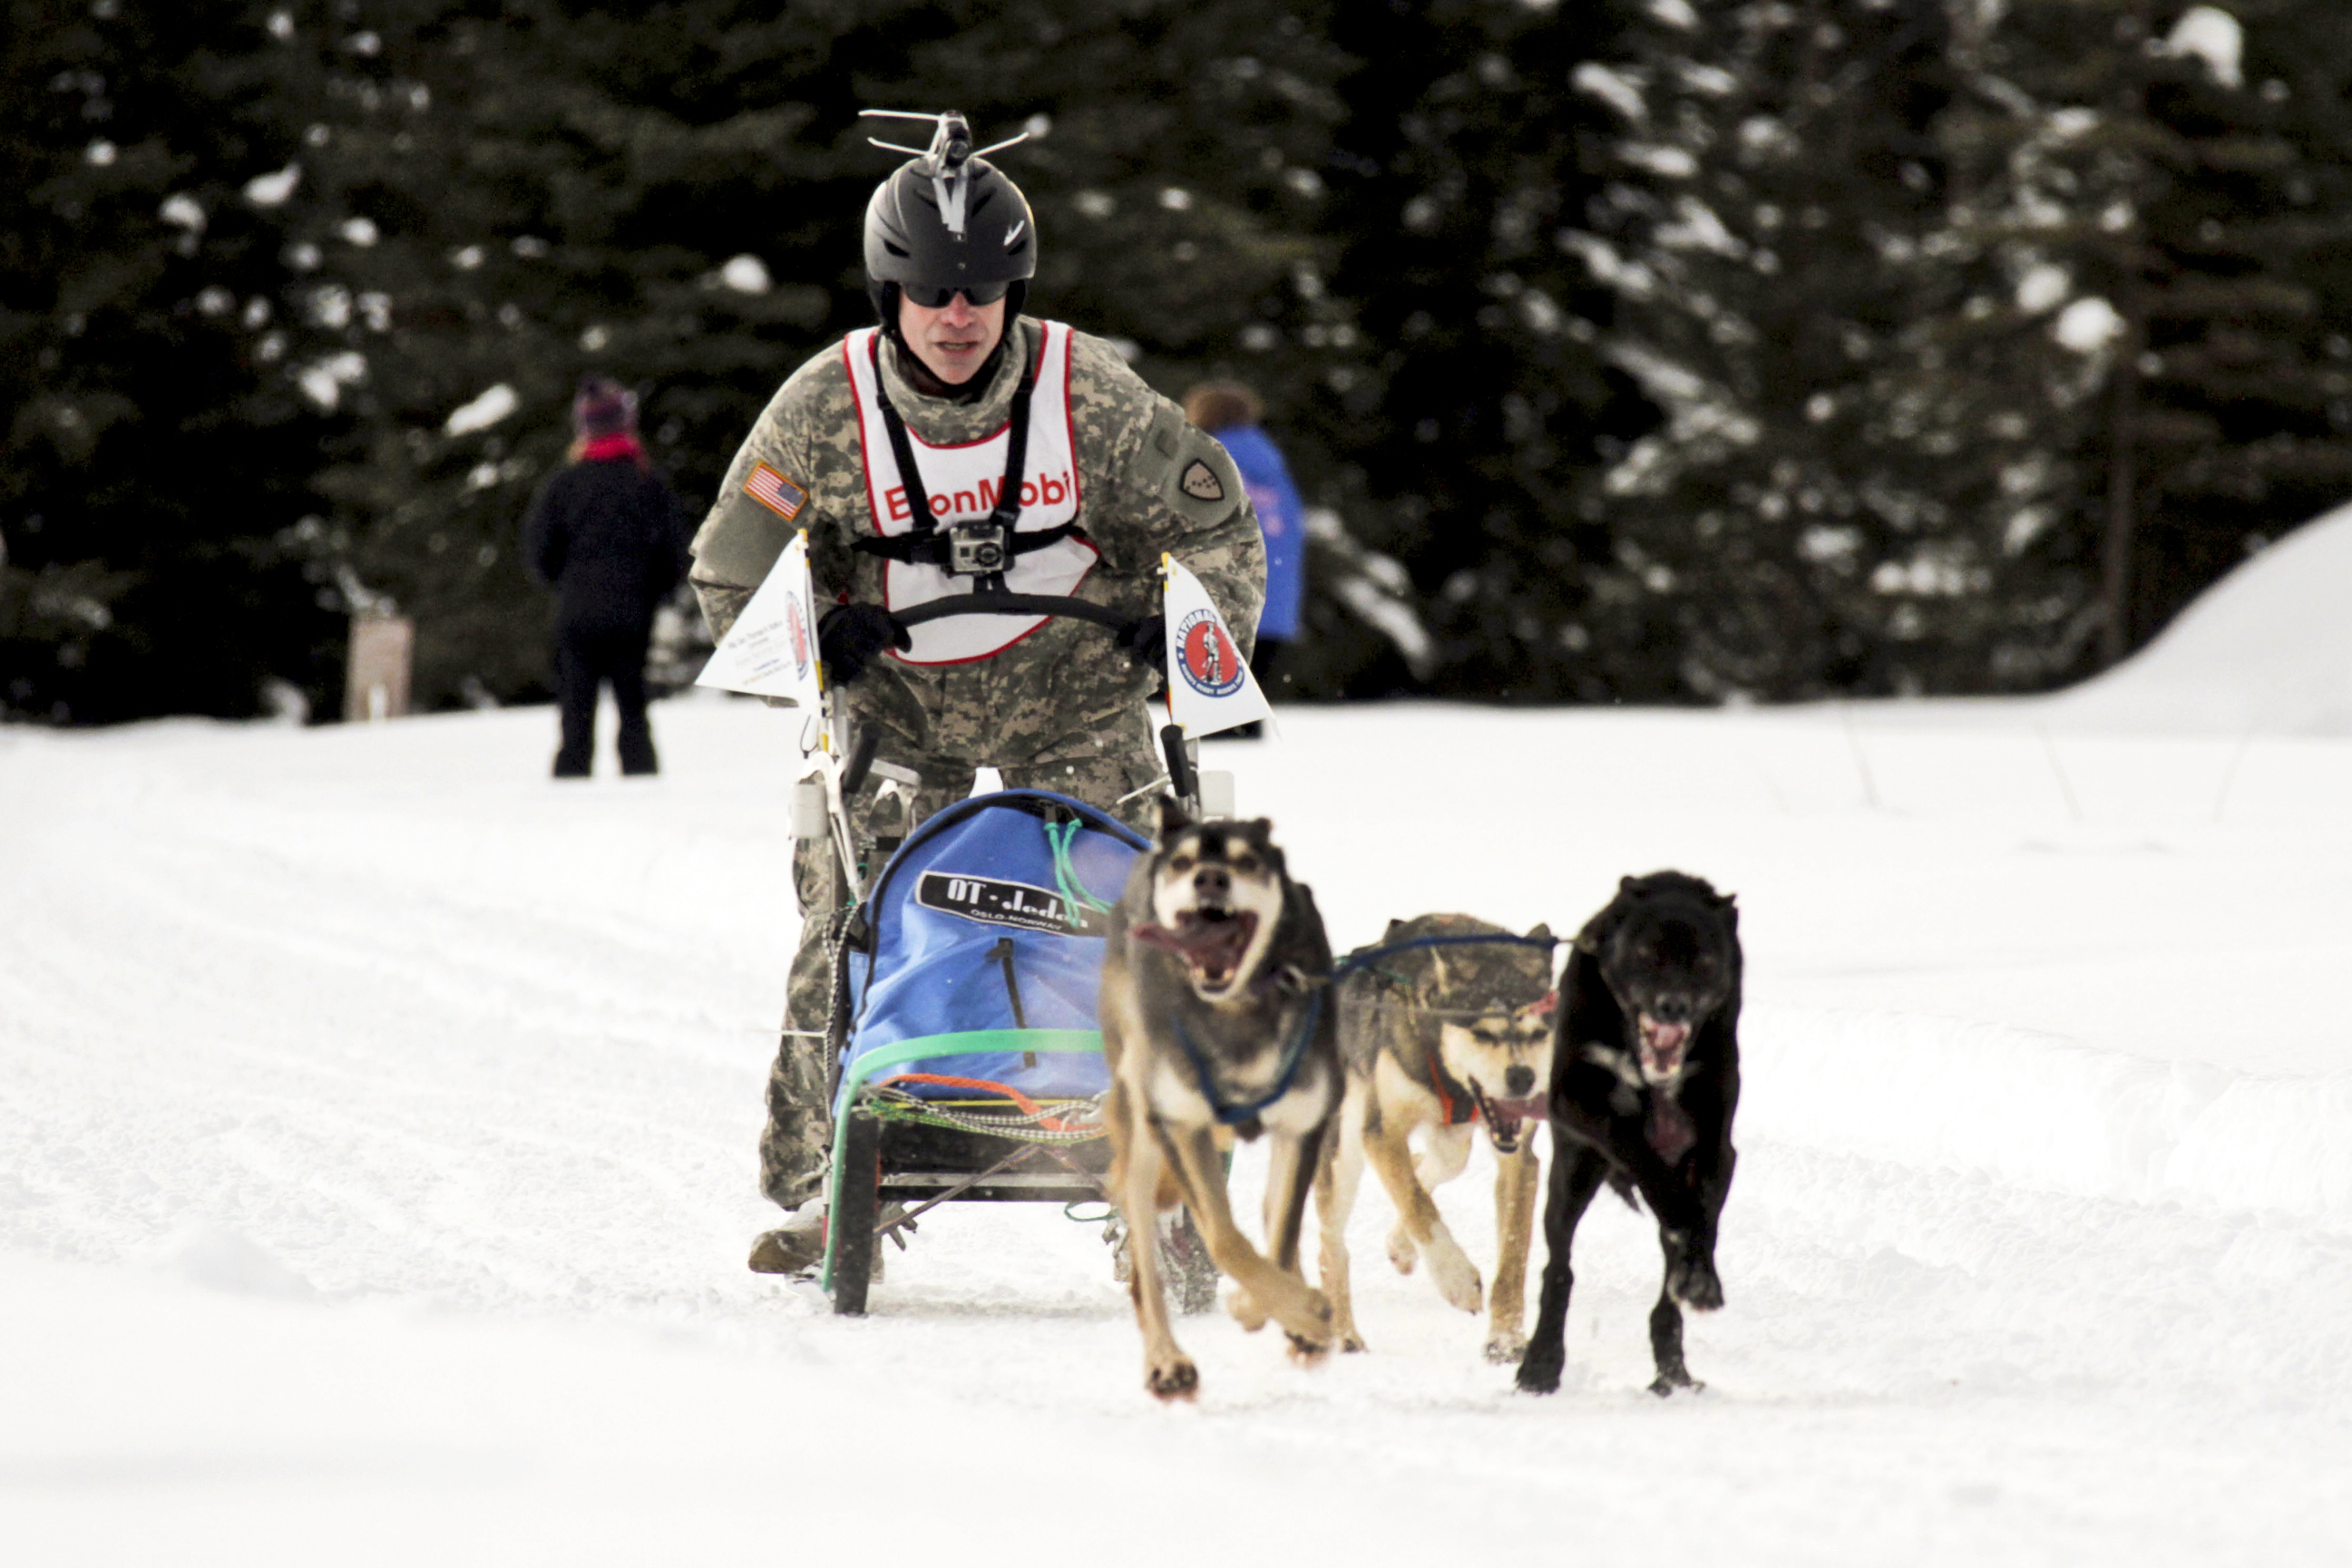 File:Flickr - The U.S. Army - Sled Dog Race.jpg ...